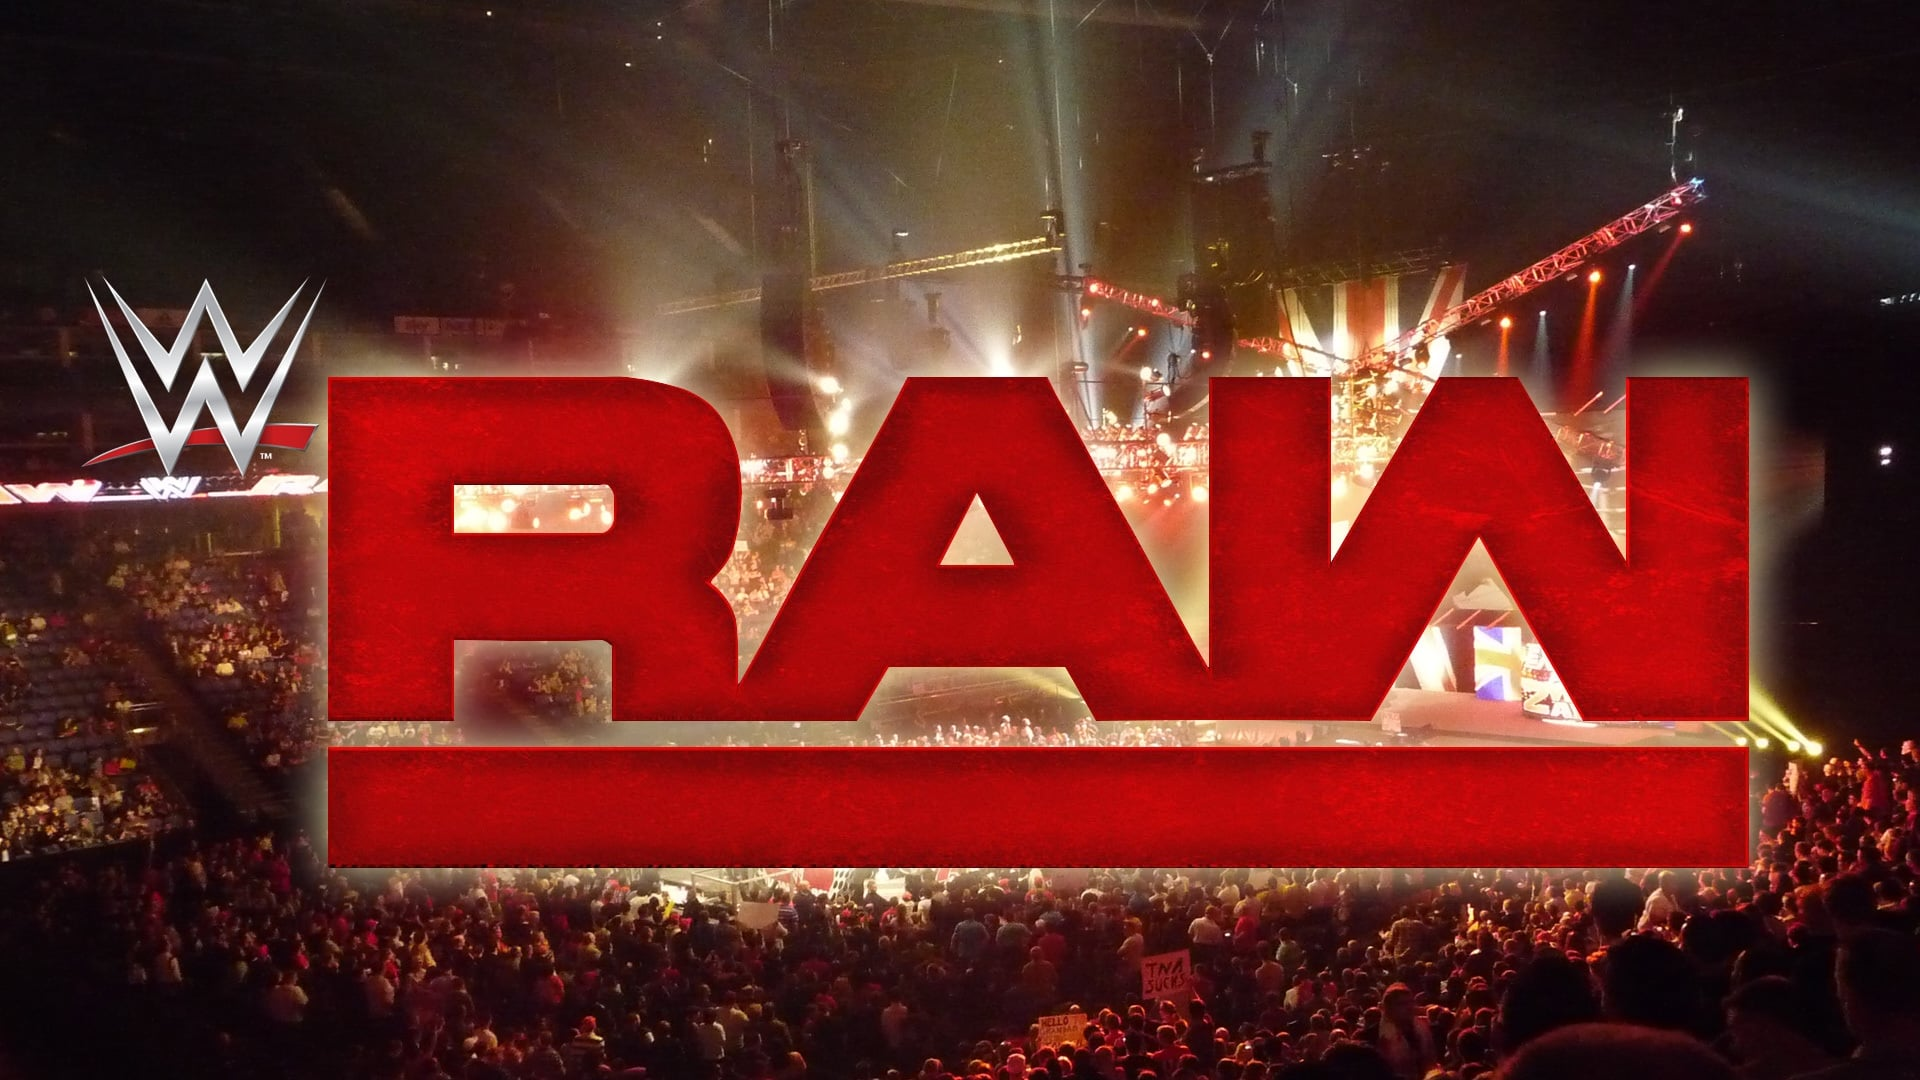 WWE Raw - Season 5 Episode 36 : RAW is WAR 226